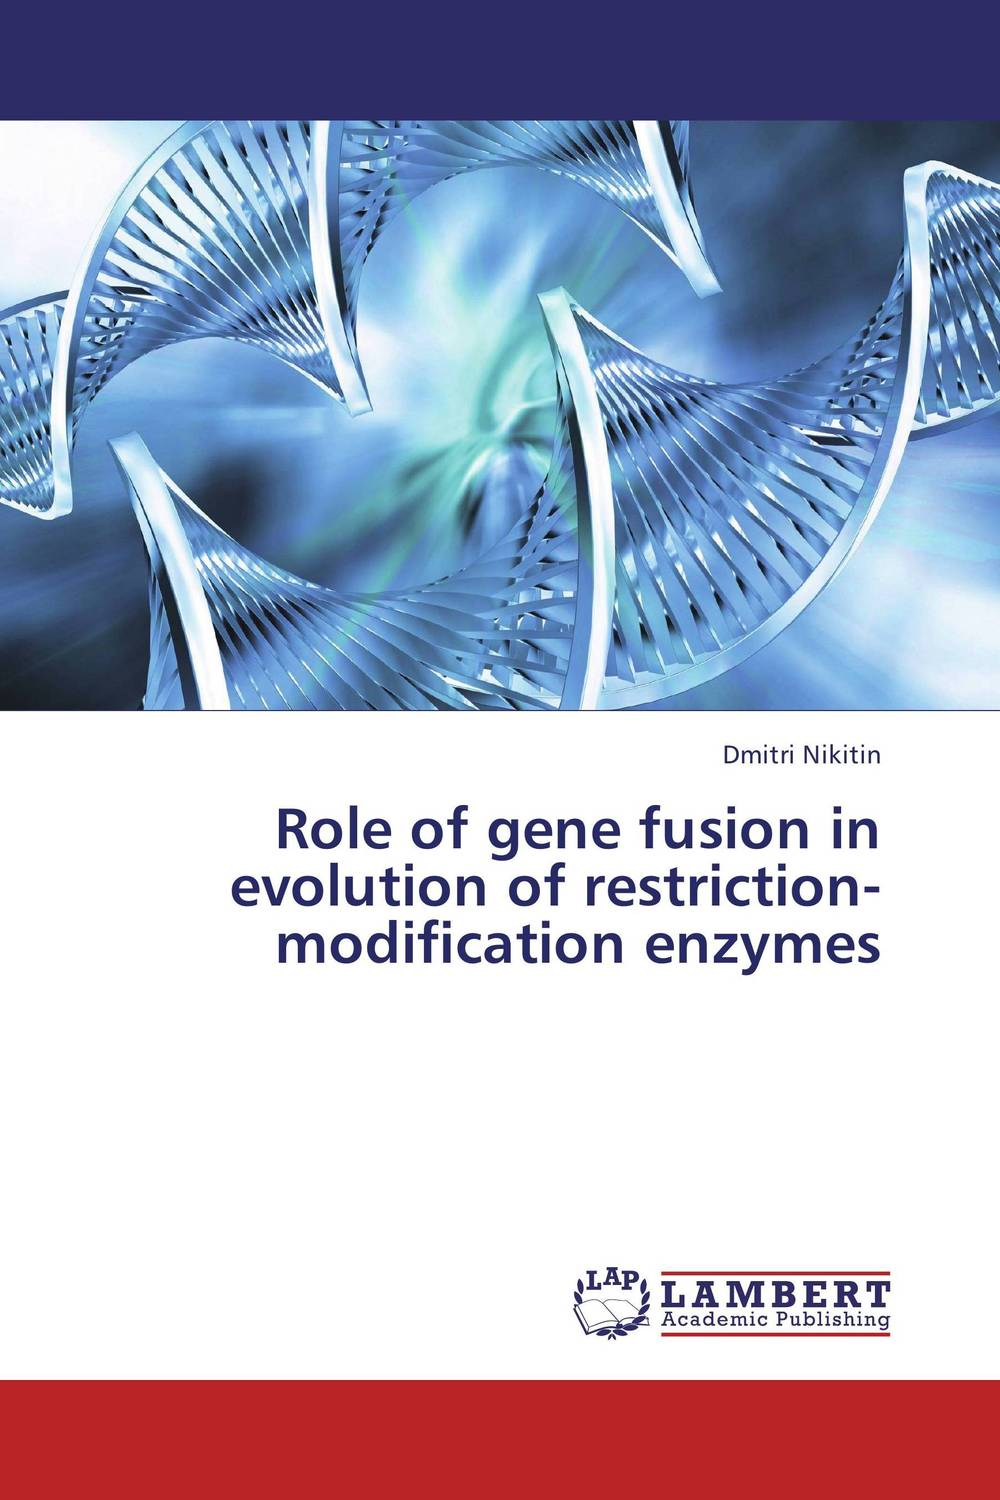 Role of gene fusion in evolution of restriction-modification enzymes multimodal fusion of iris and fingerprint